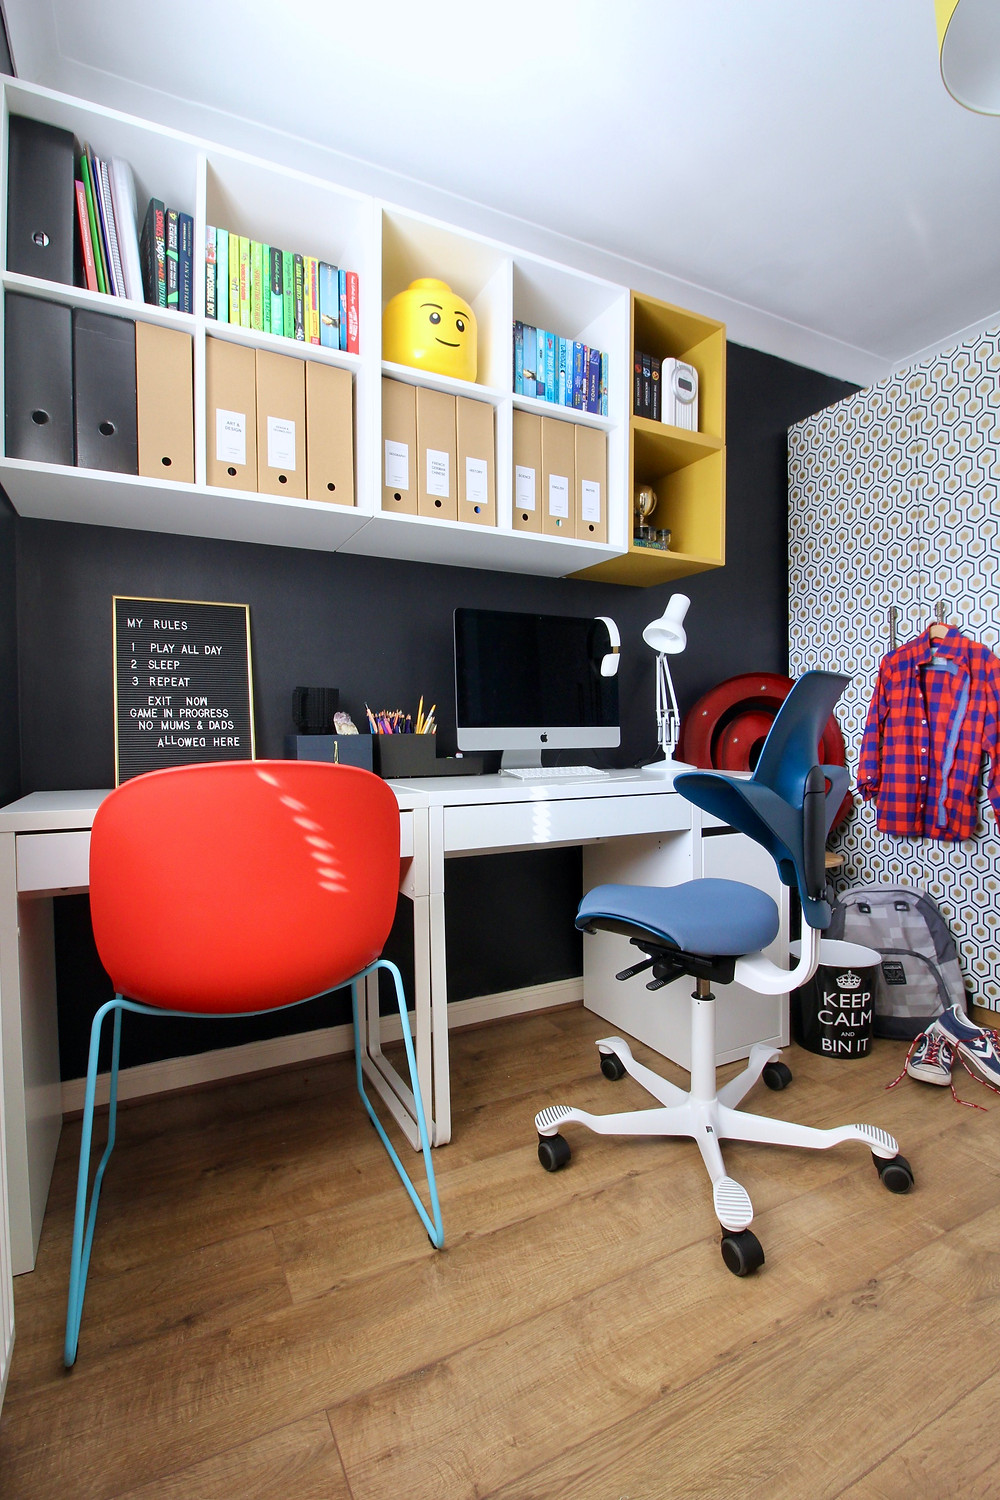 Spare room turned home office for a teenager | seasonsincolour.com interiors blog | wall painted in Dulux Cobalt Night | Flokk Capisco Puls 8020 and PAX Wardrobe ikea hack, IKEA EKET SHELVES